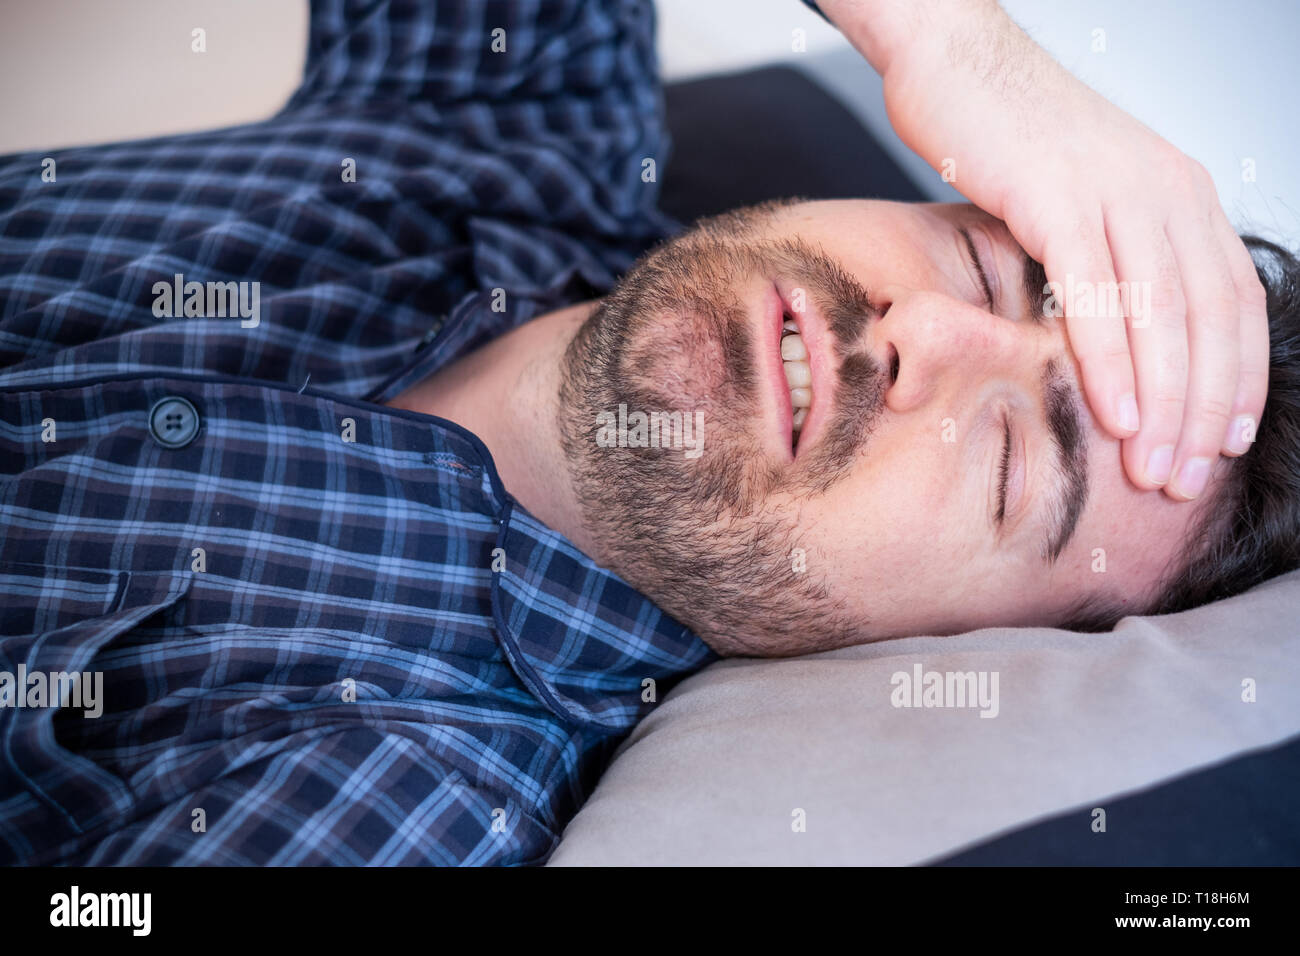 Man with sleep disorder lying in the bed - Stock Image